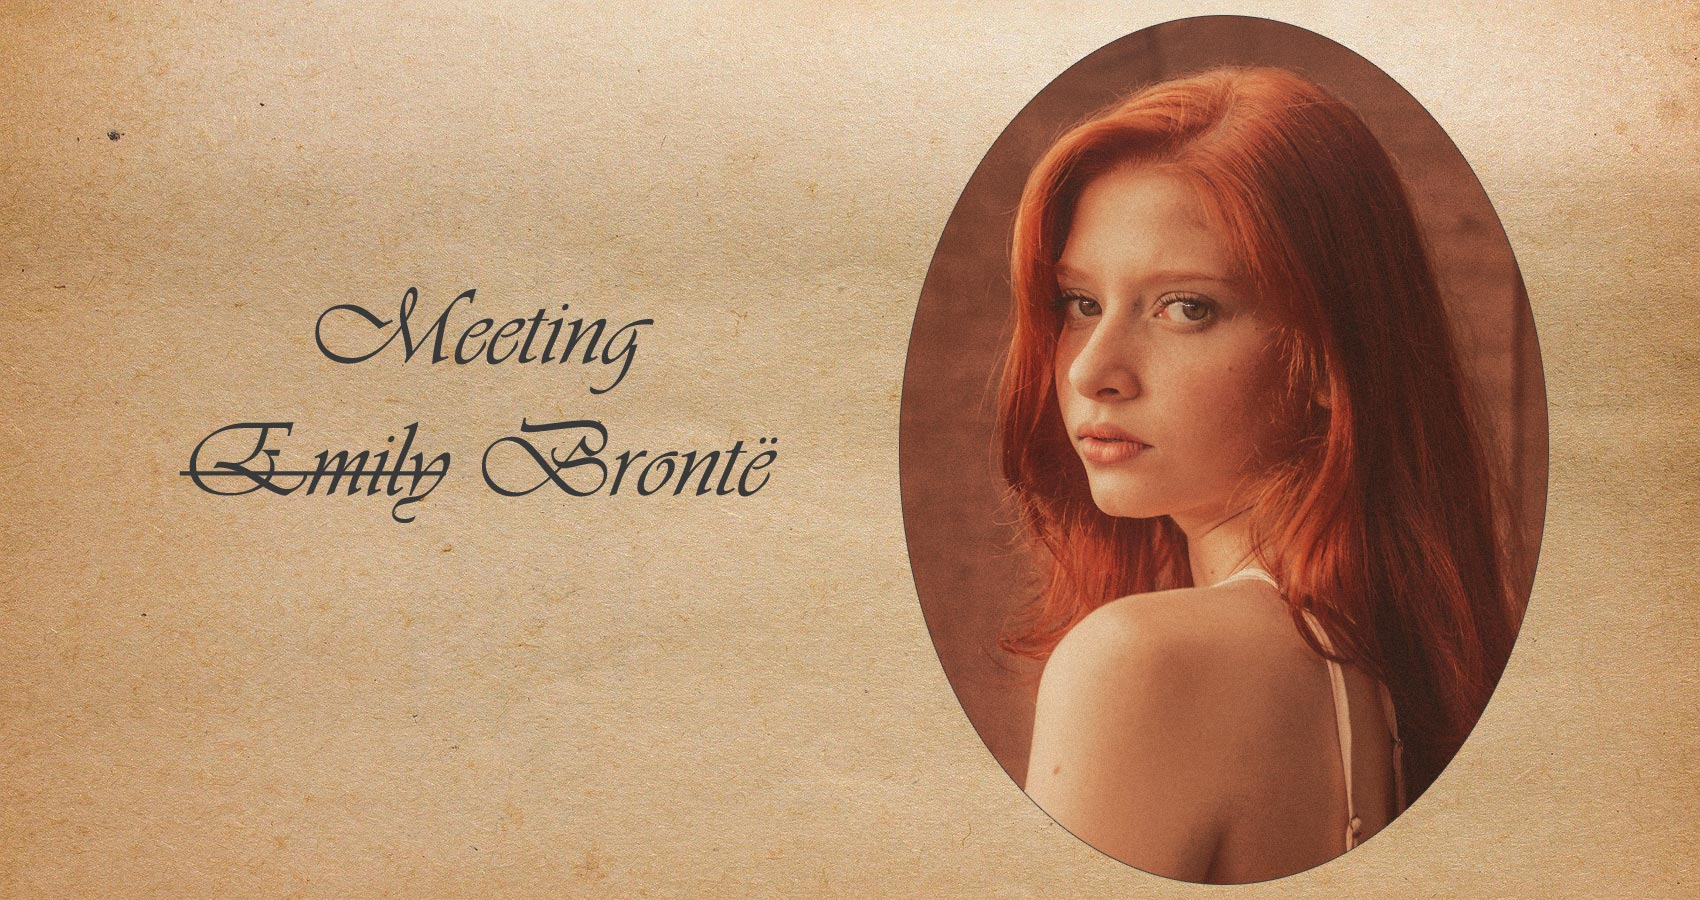 Meeting Bronte, short story by Andy Houstoun at Spillwords.com